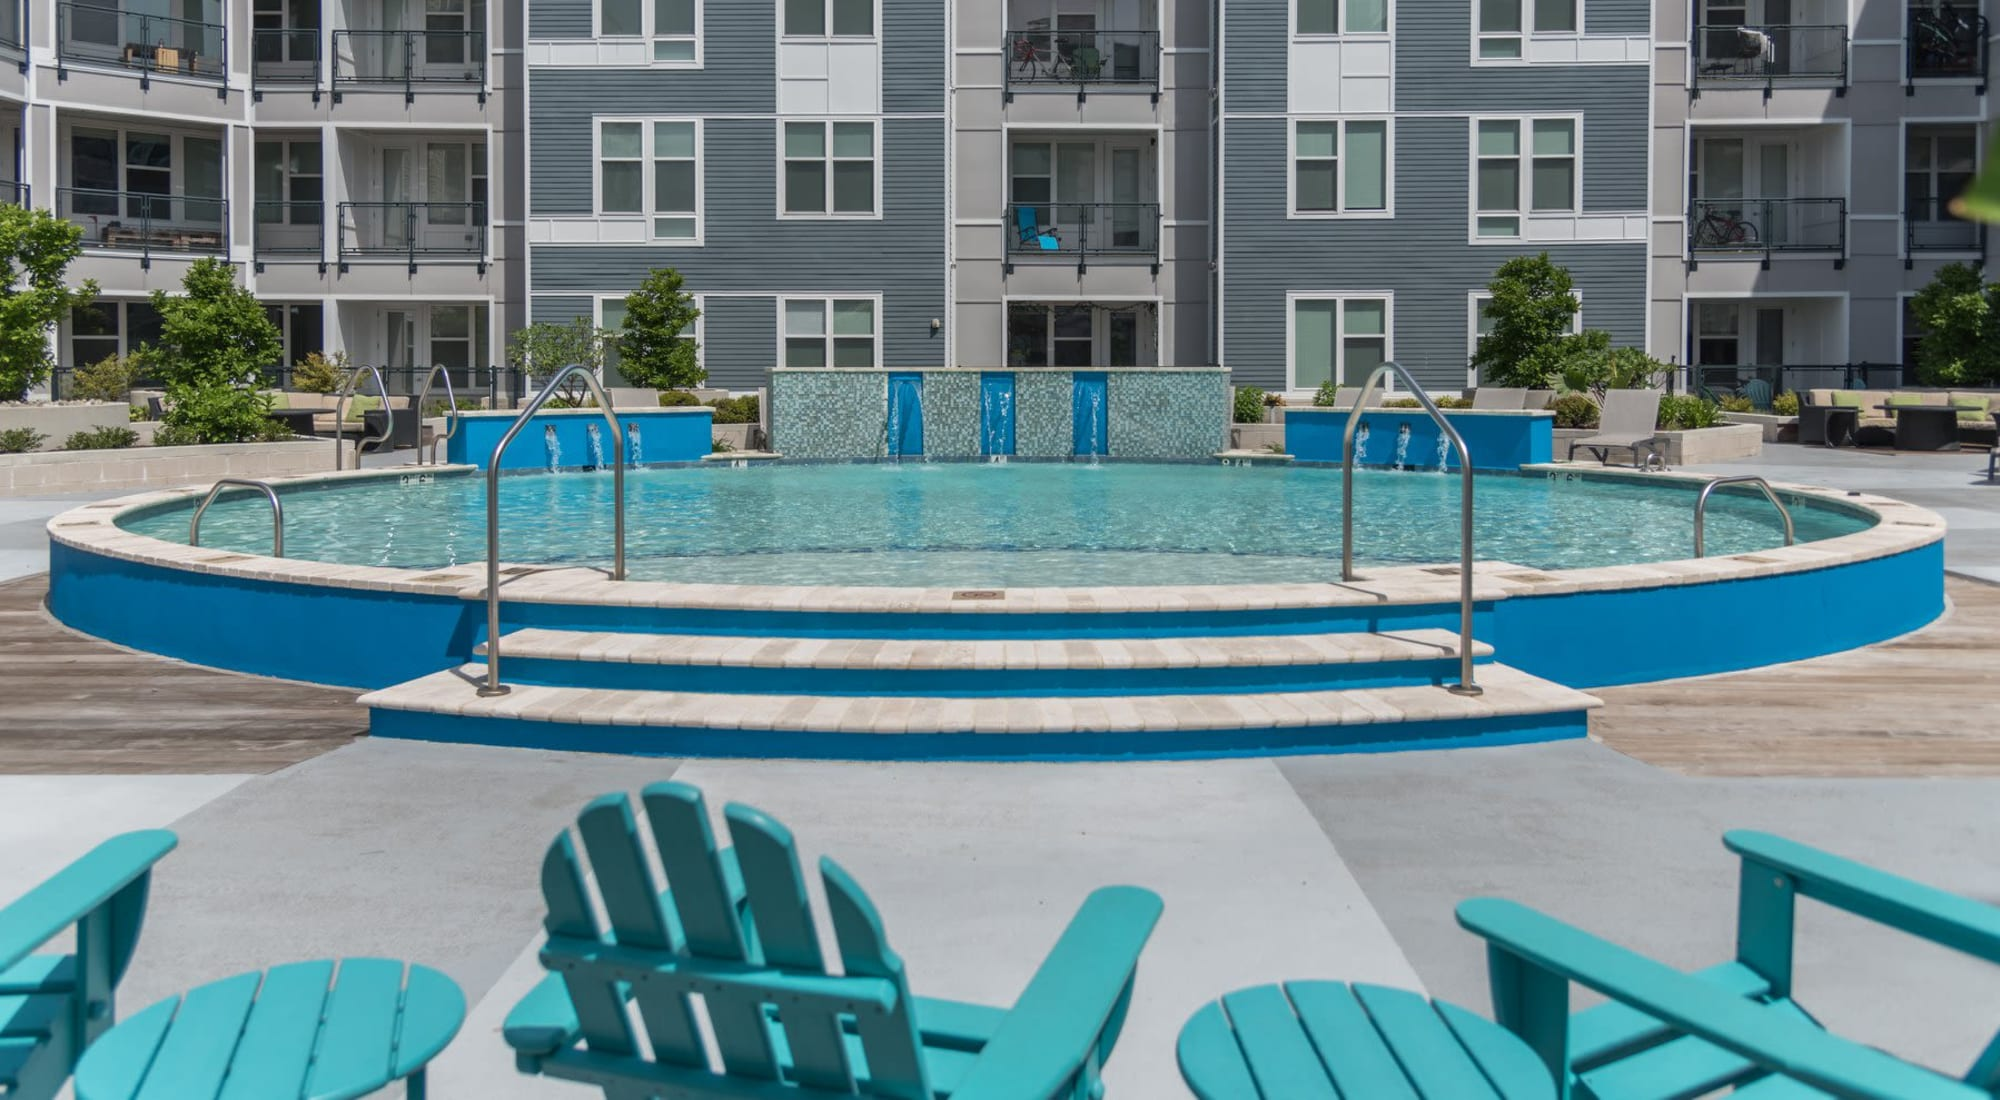 Apartments at Indigo 19 in Virginia Beach, Virginia